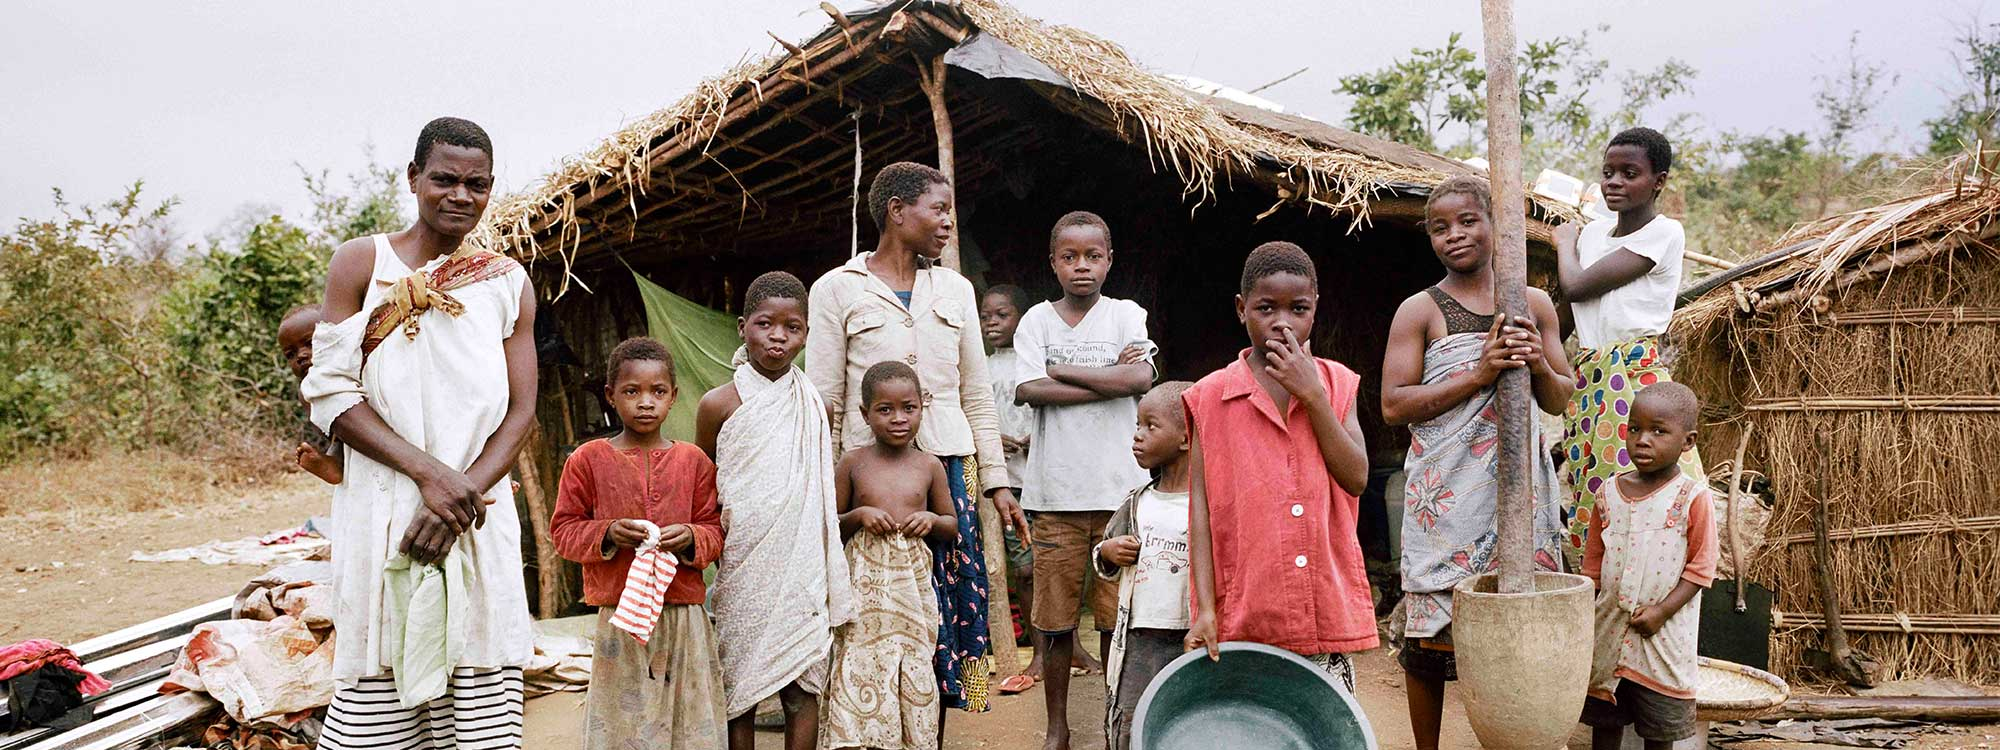 family in malawi outside their home